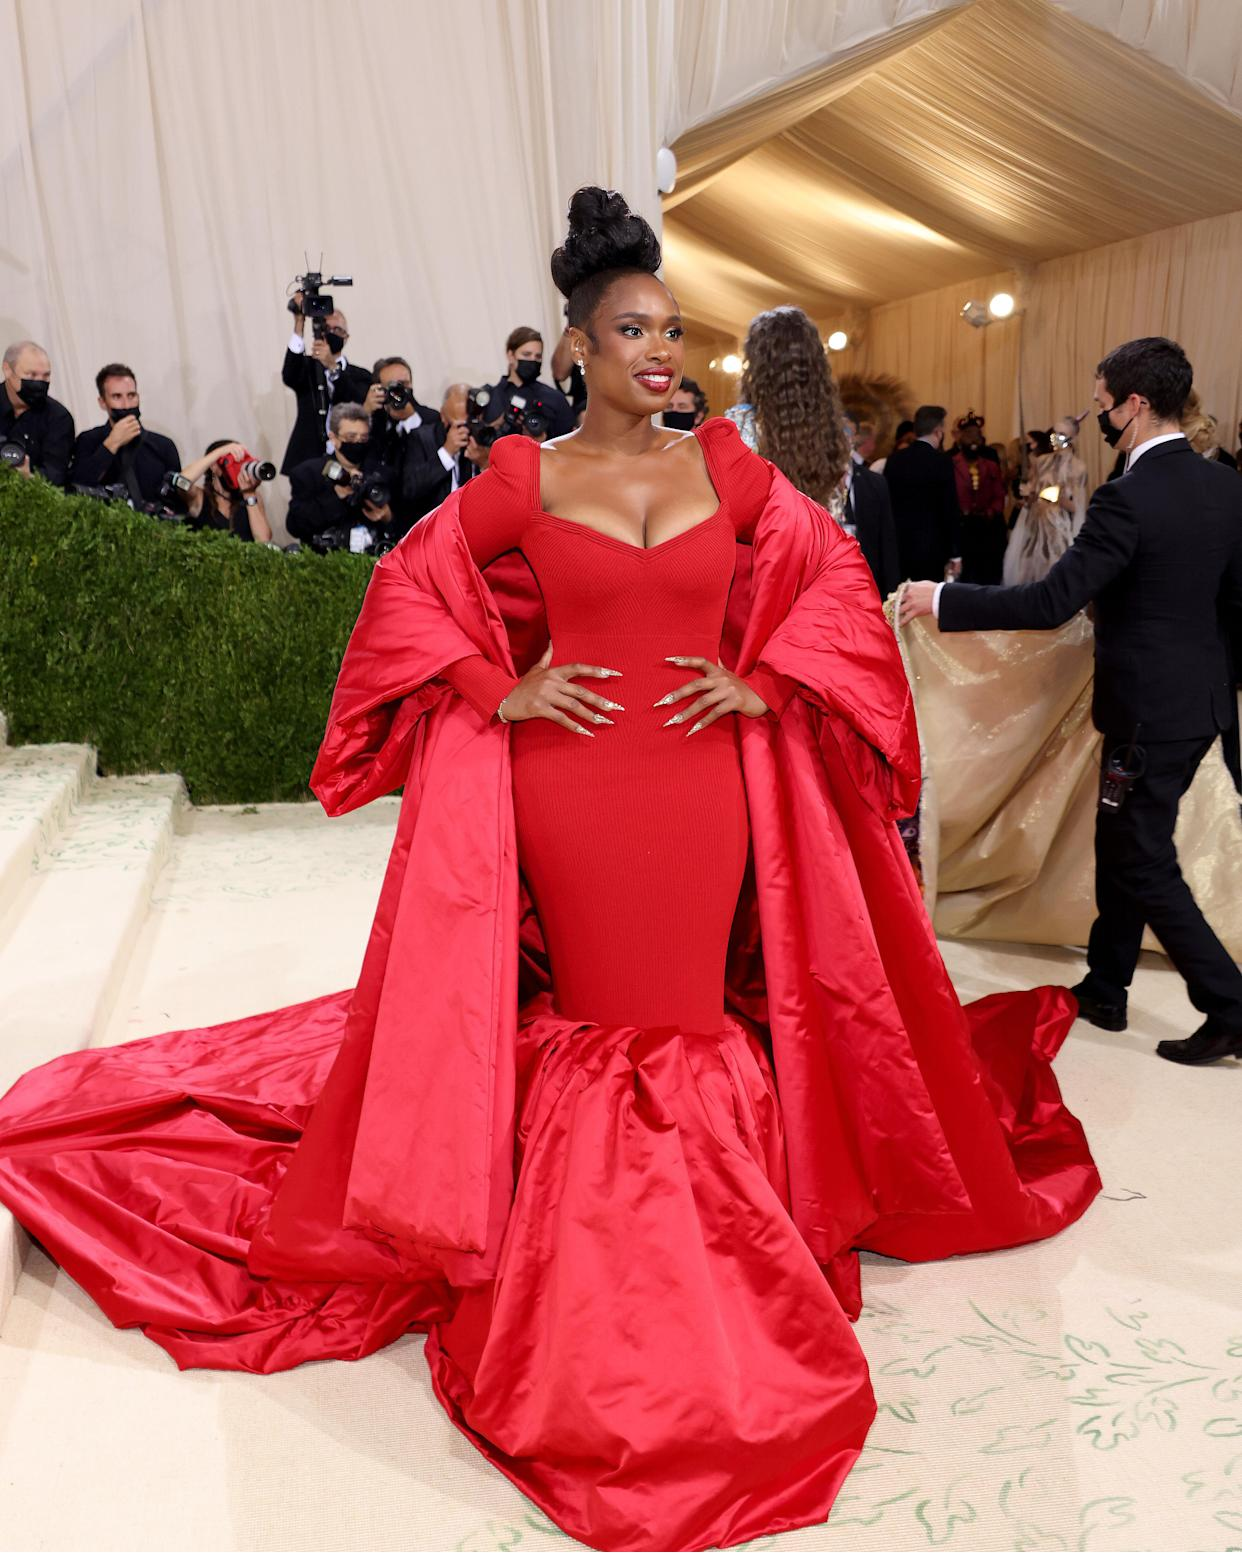 Jennifer Hudson attends The 2021 Met Gala Celebrating In America: A Lexicon Of Fashion at Metropolitan Museum of Art on September 13, 2021 in New York City. (Getty Images)